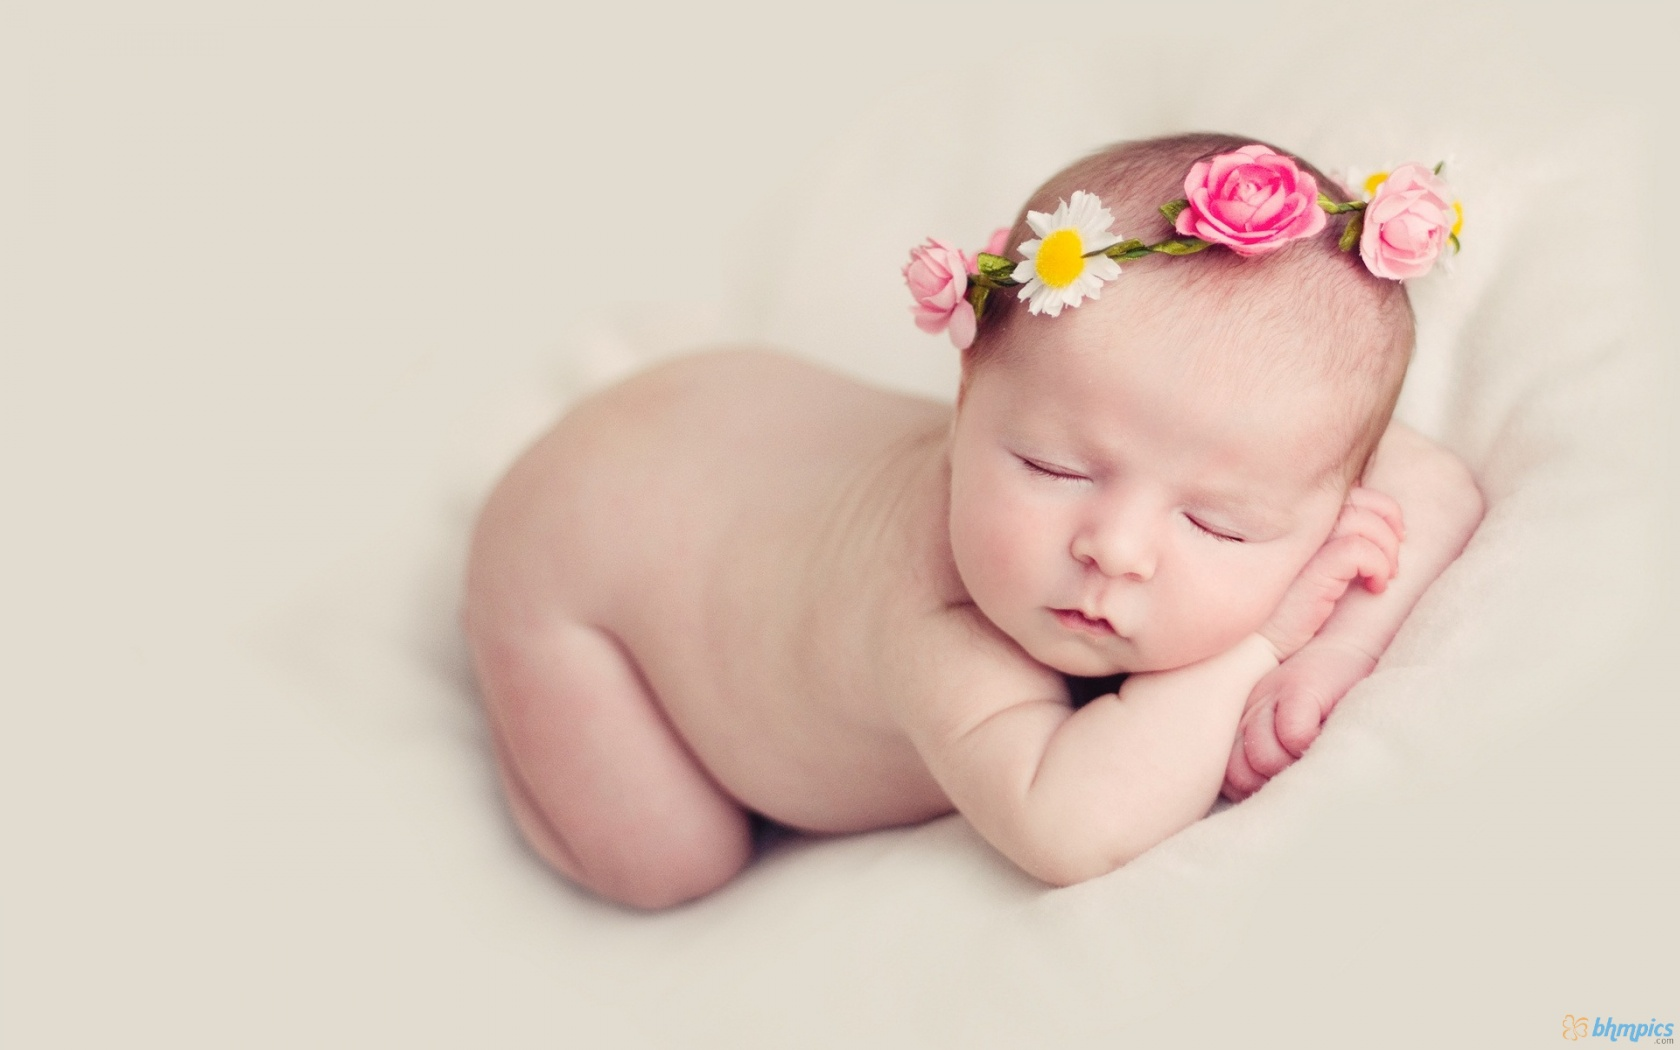 Cute Baby Wallpapers Free Download For Desktop